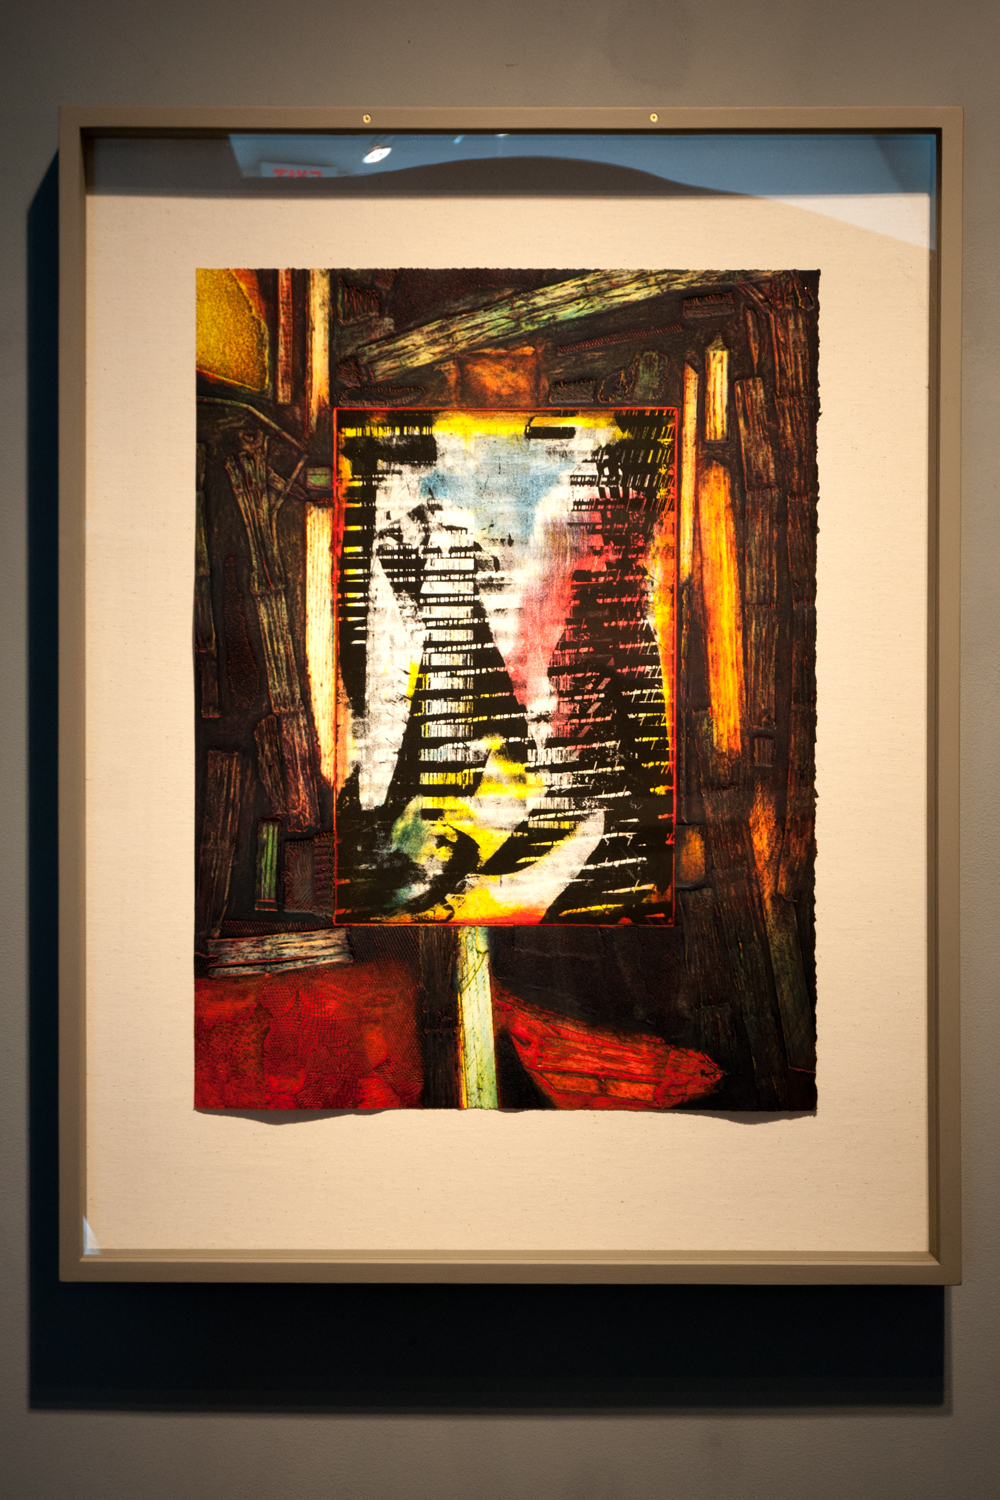 Viewing through Charlie's barn, 2002, collagraph monoprint, photo intaglio, 40¾ x 31½ inches